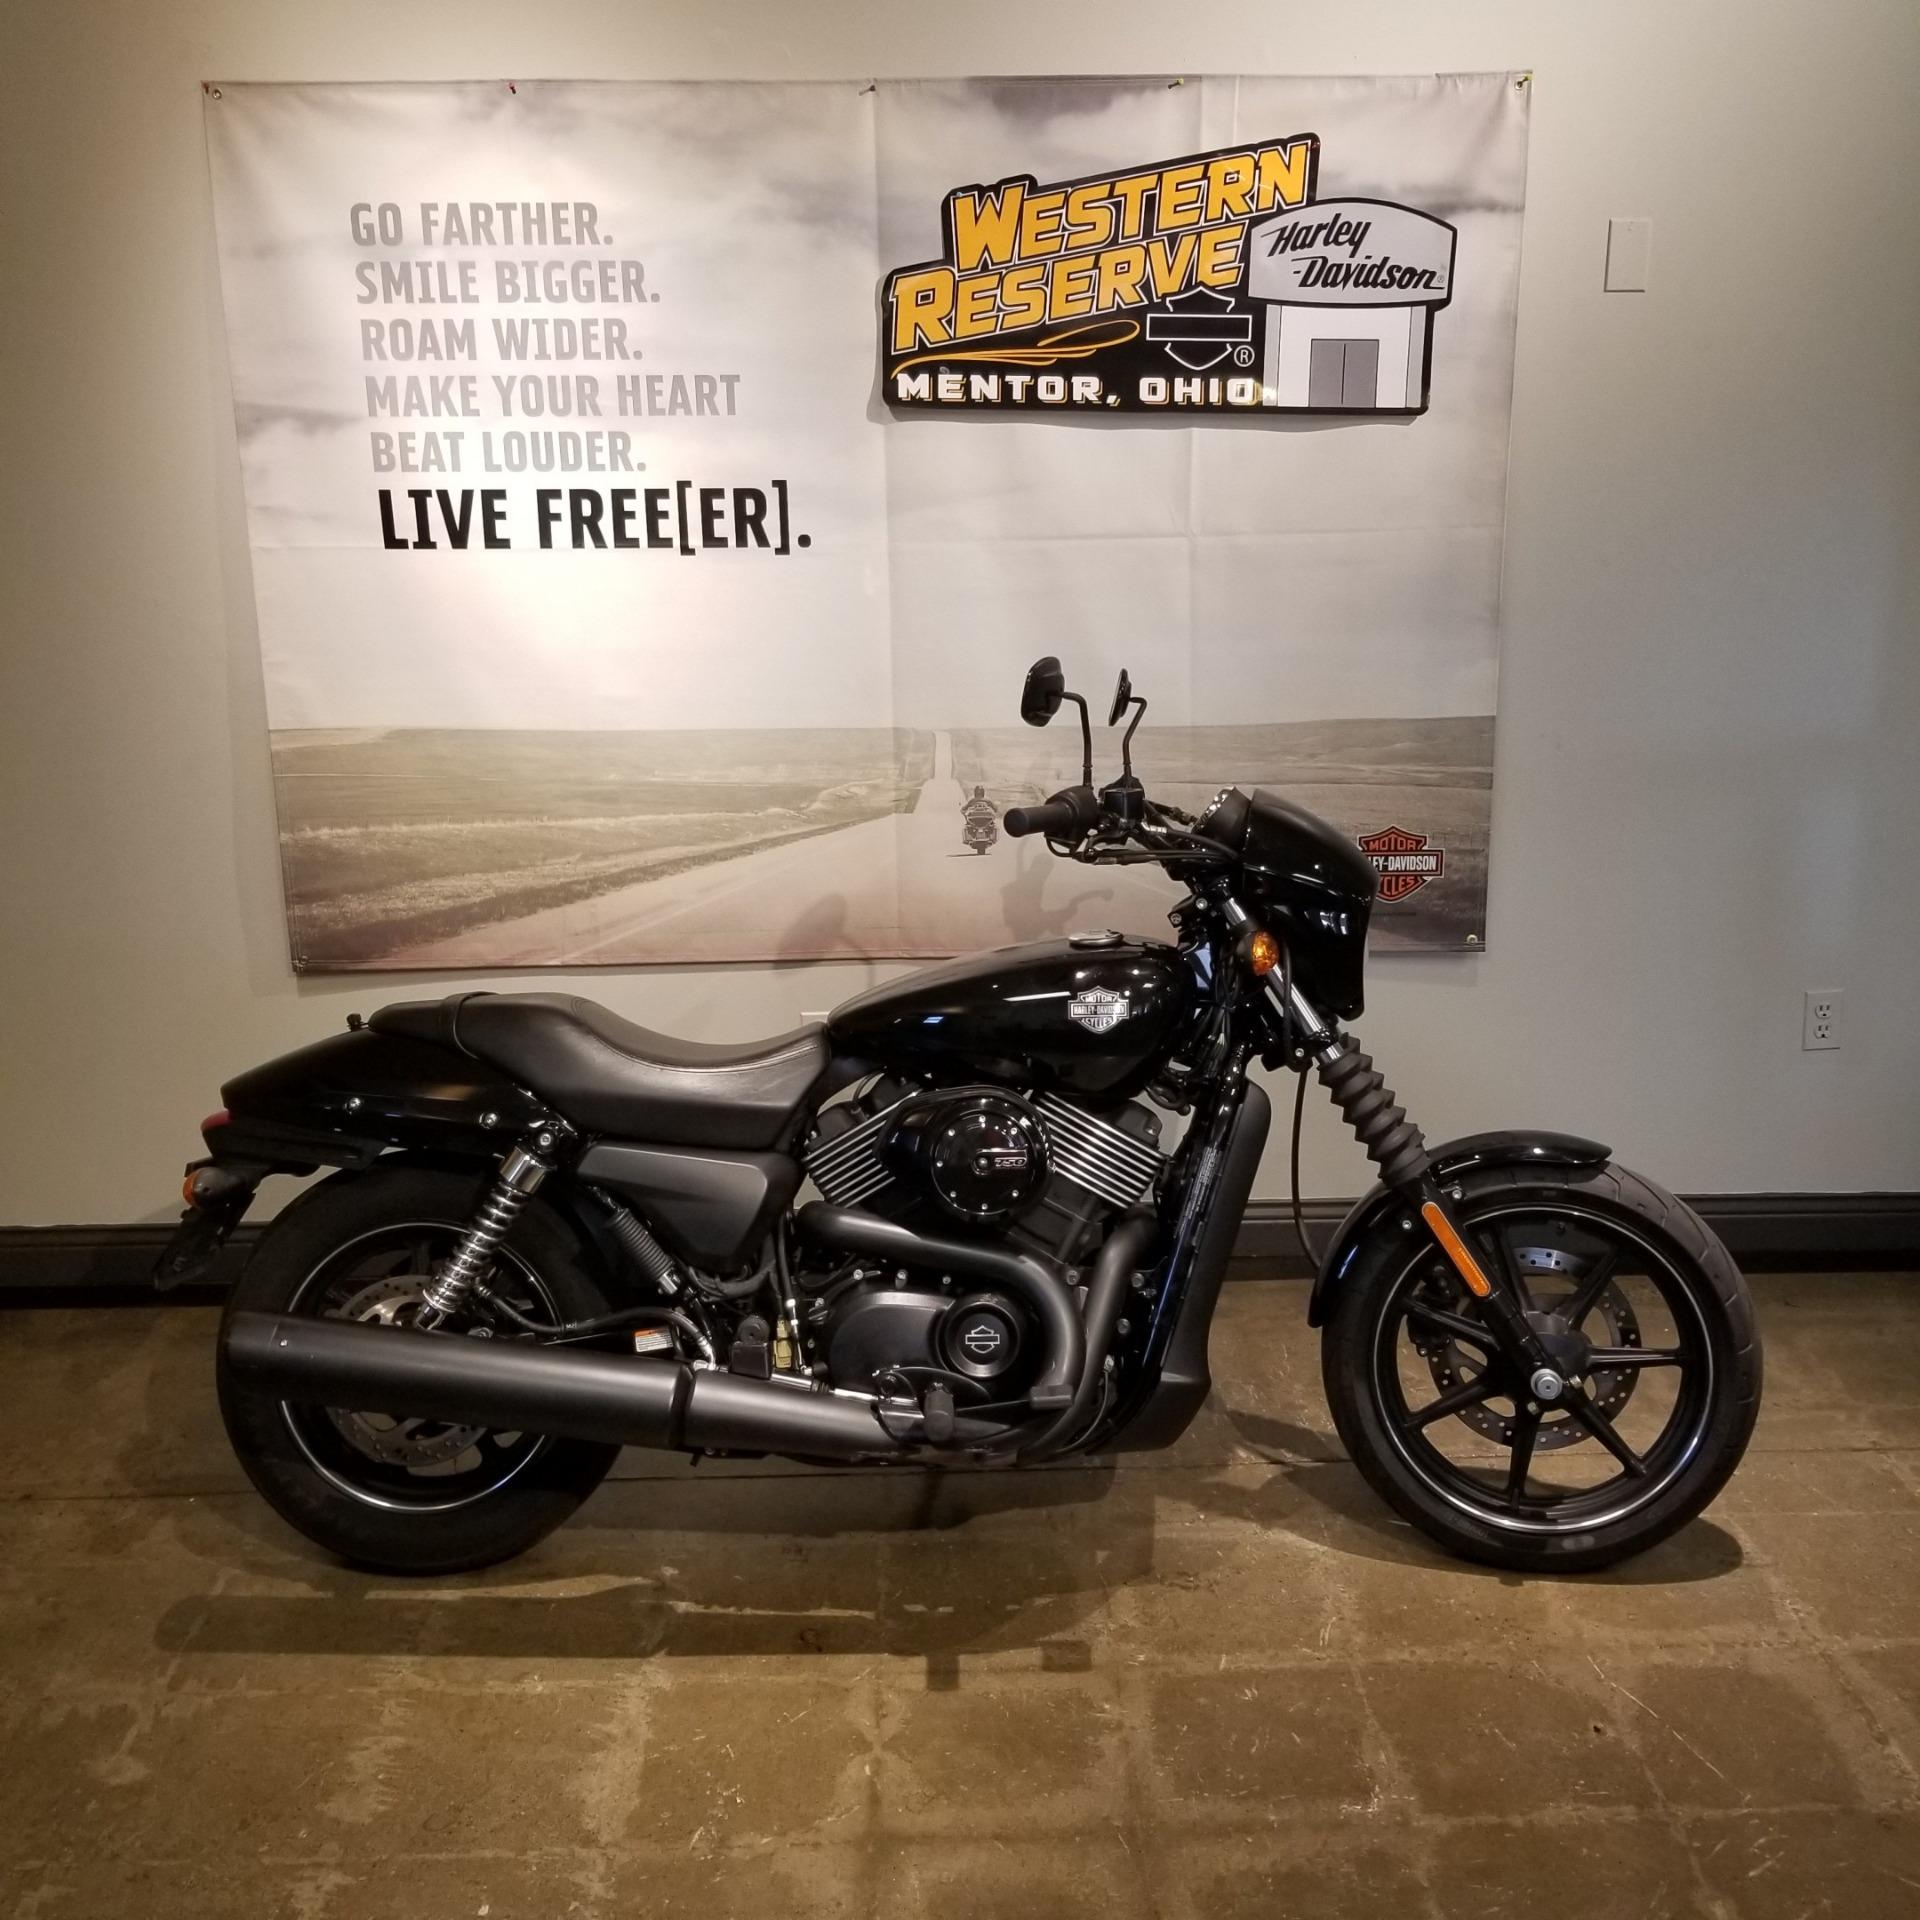 2015 Harley-Davidson Street™ 750 in Mentor, Ohio - Photo 1